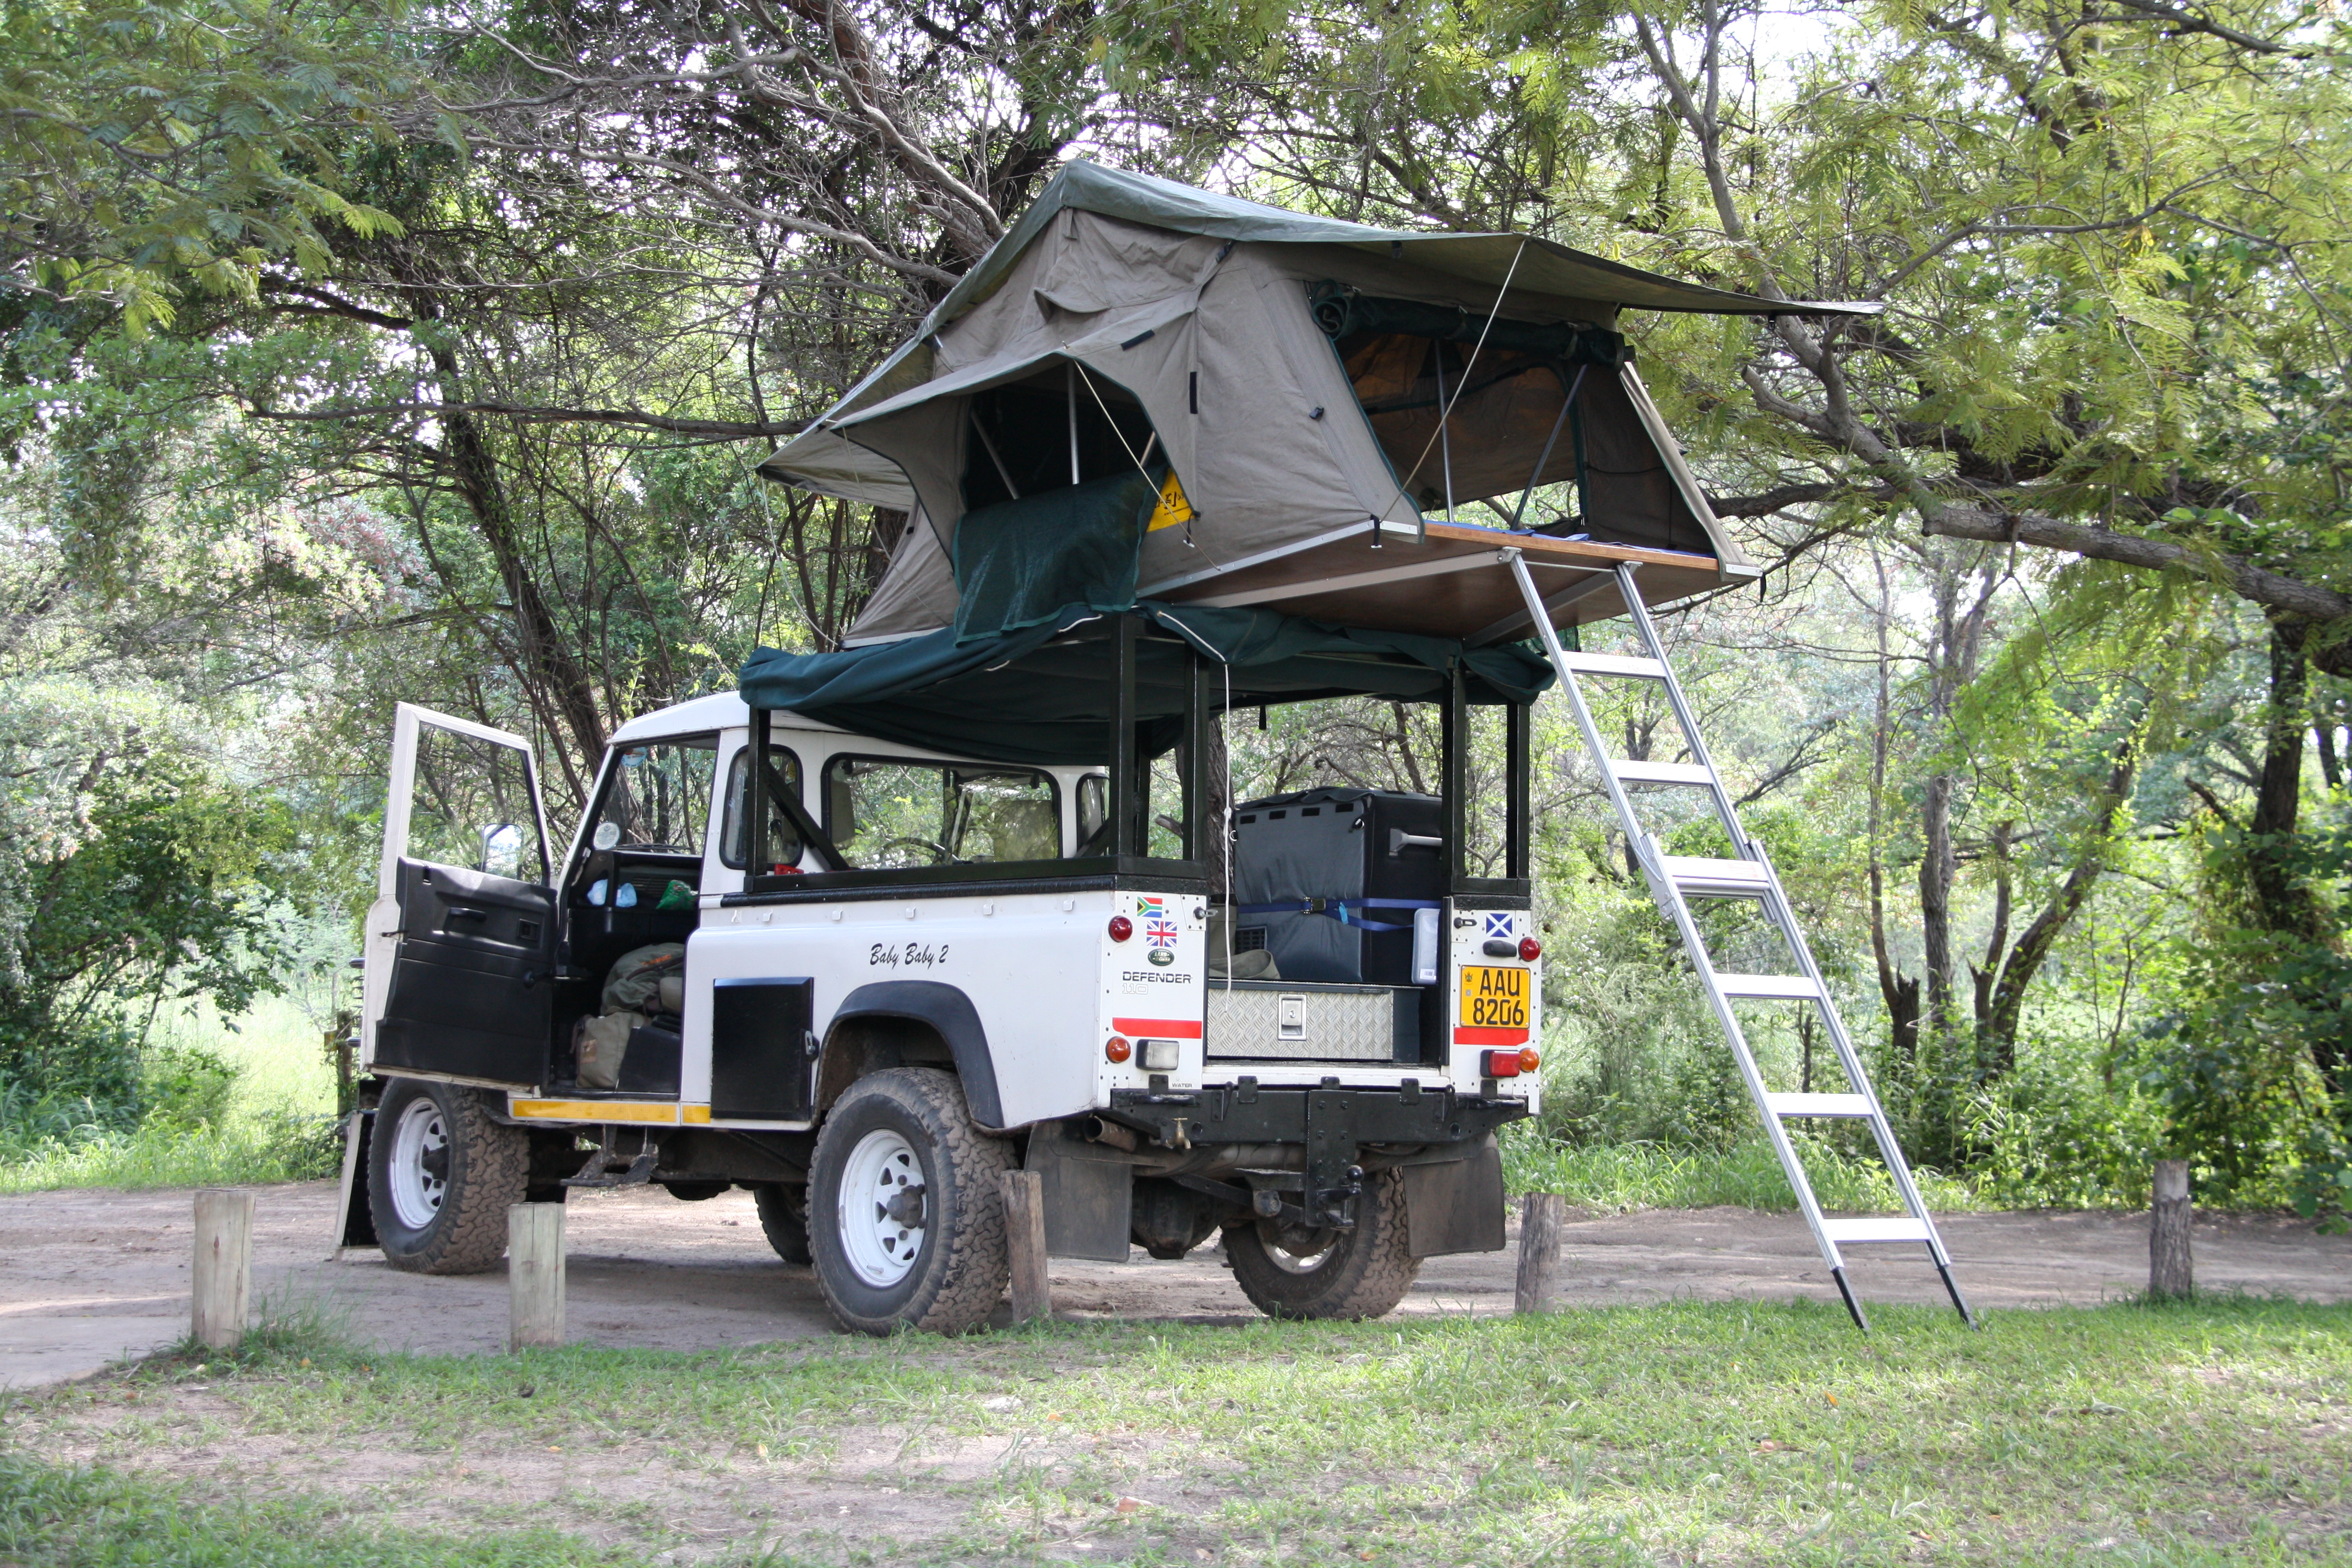 4x4 hire in Johannesburg